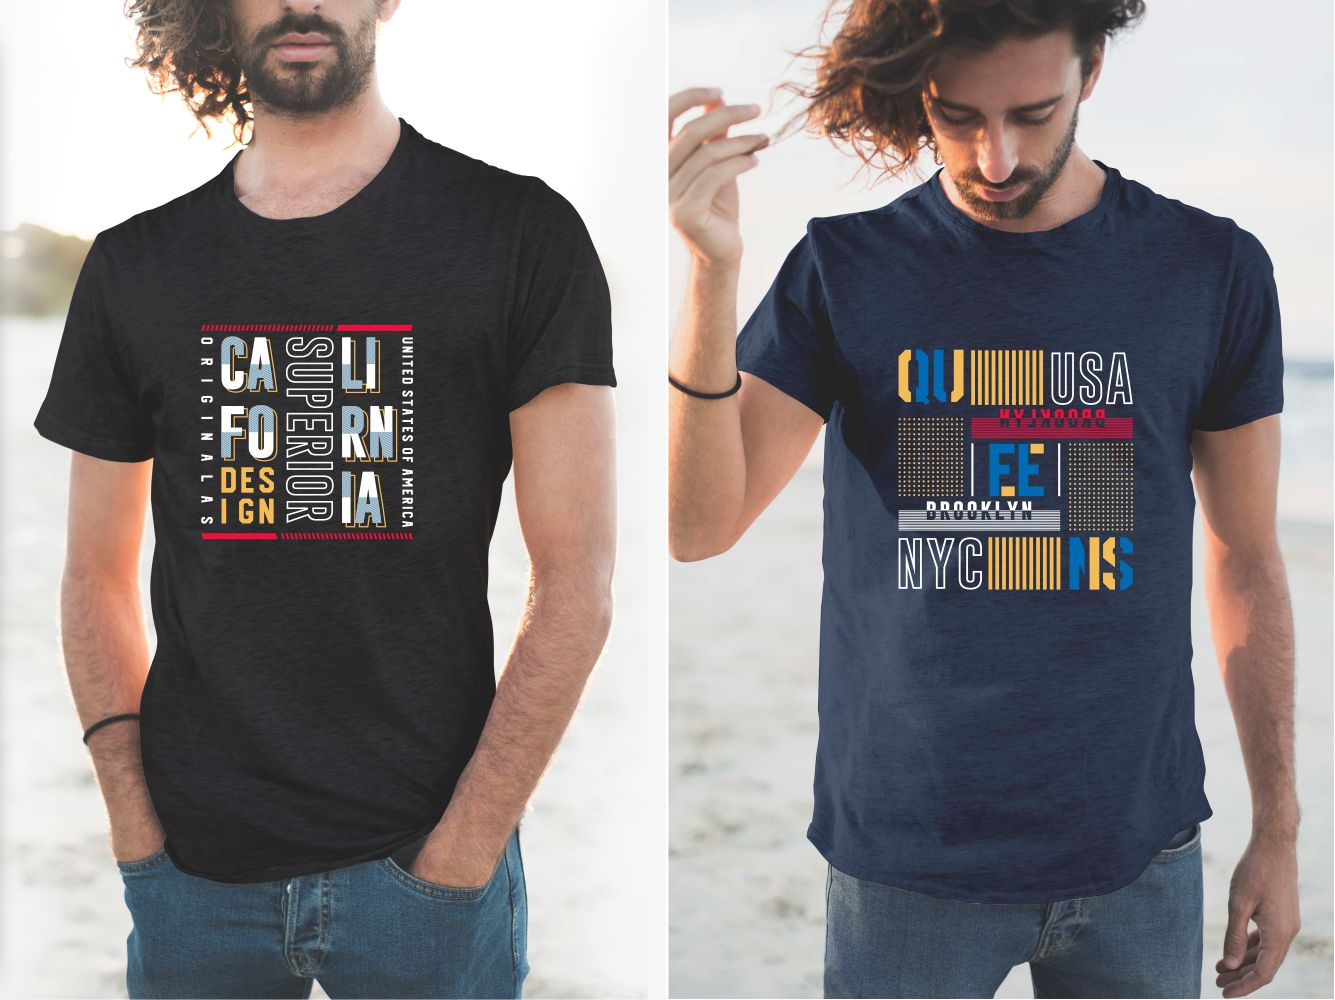 Two T-shirts with original US state lettering designs.